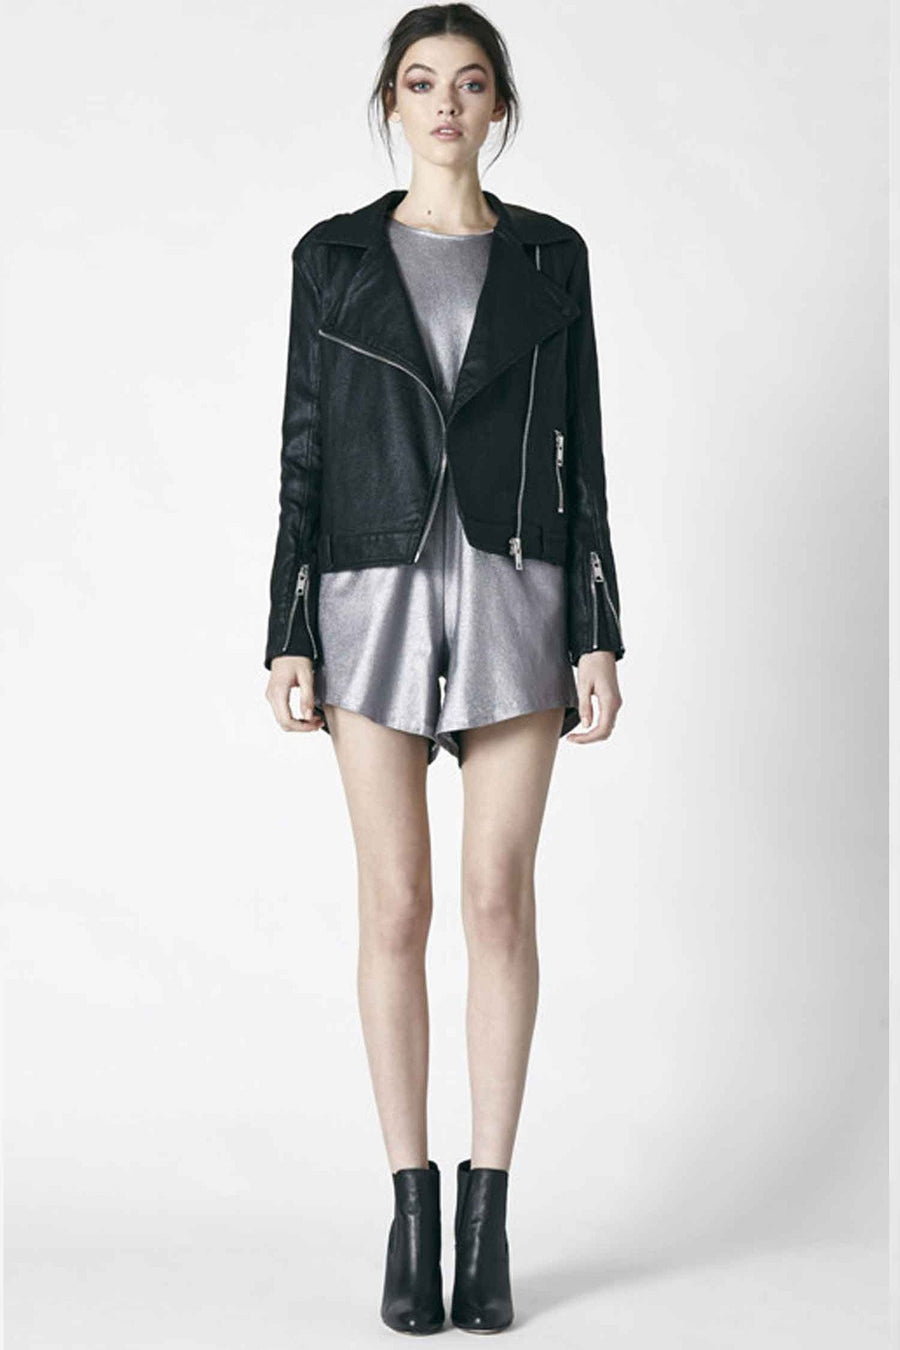 angels-biker-jacket-by-ruby-sees-all